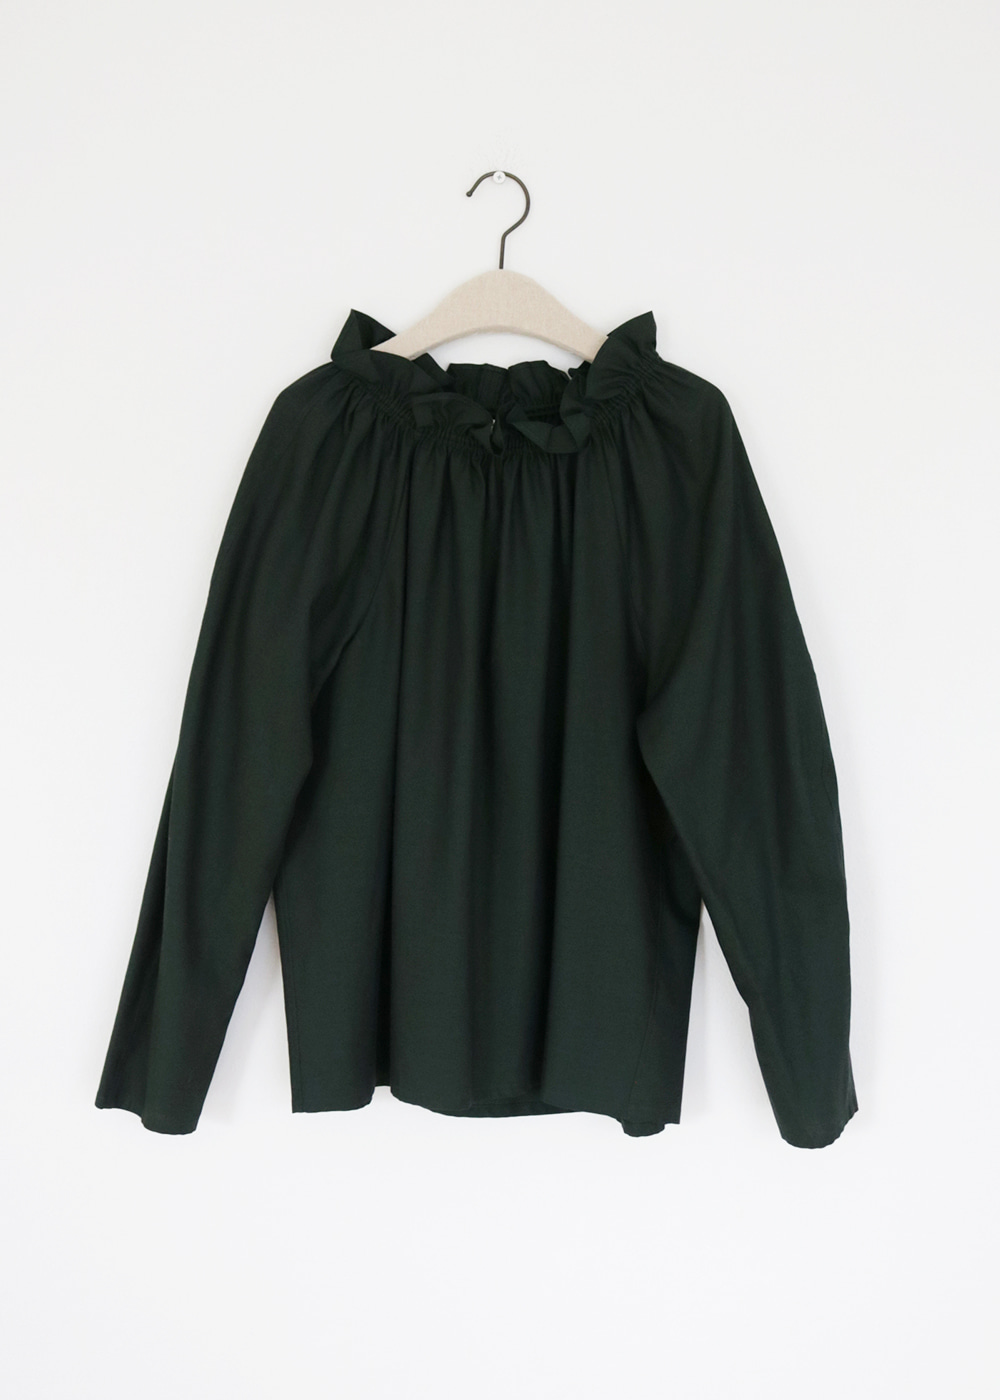 HAZEL LS BLOUSE - highlands / dark green